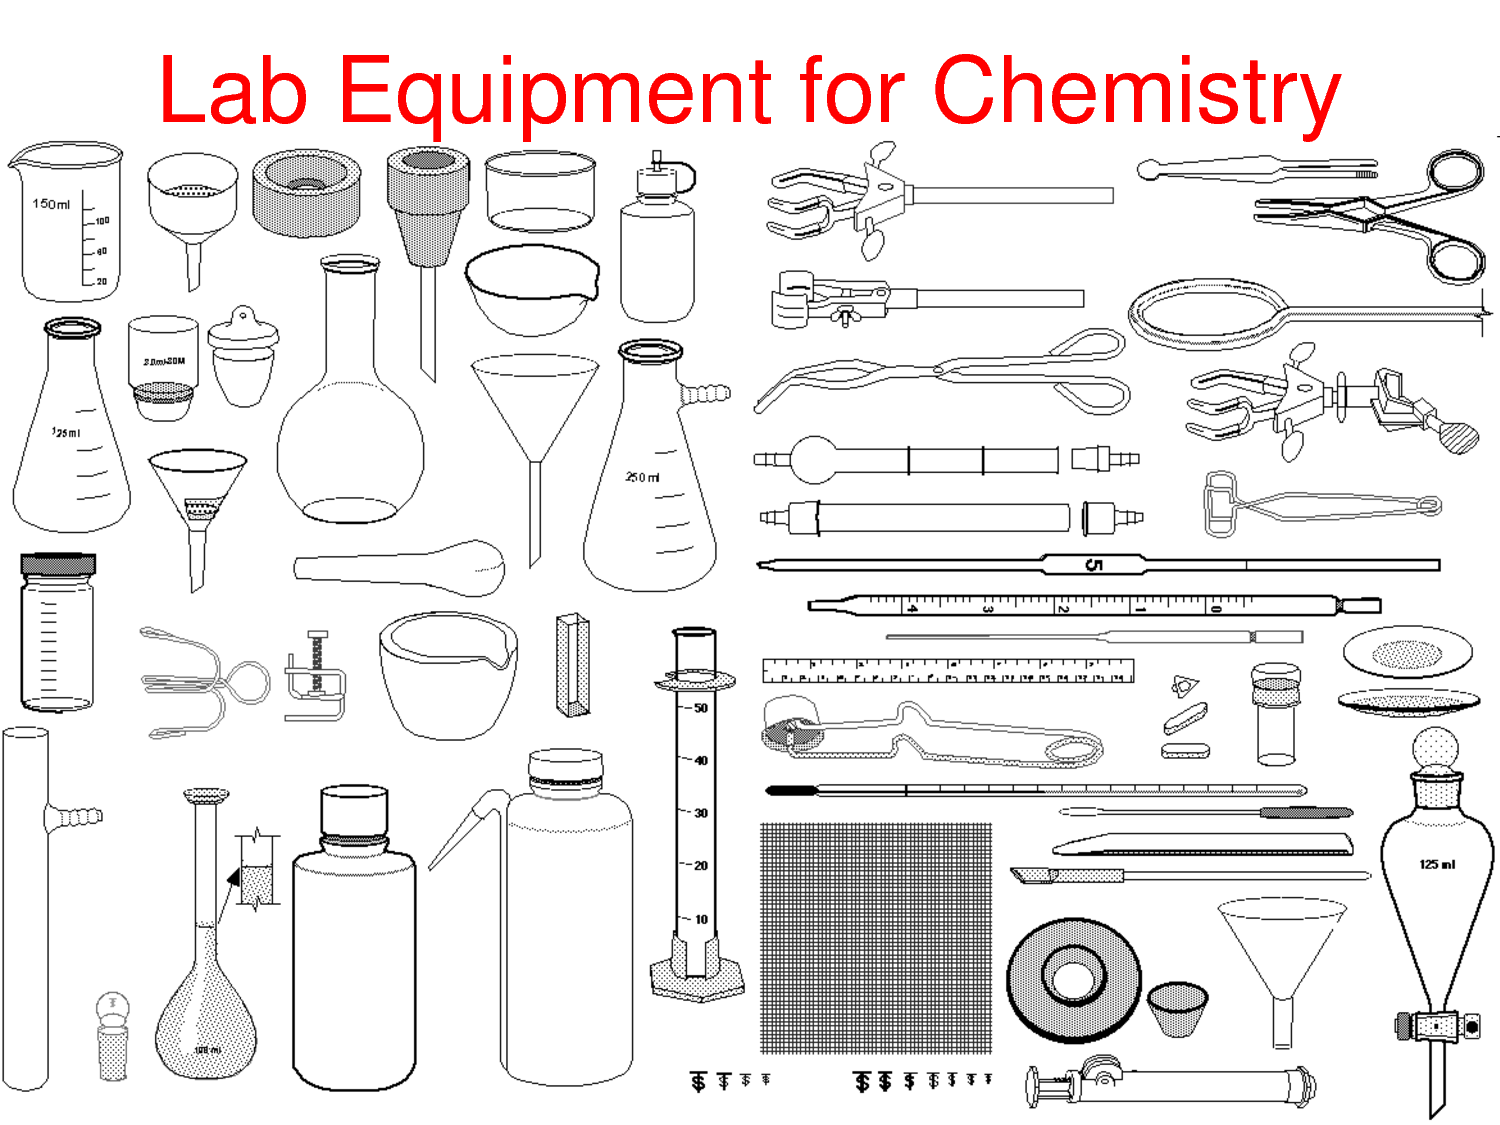 Worksheets Biology Laboratory Equipment Names 1000 images about chemistry on pinterest lab equipment labs and erlenmeyer flask